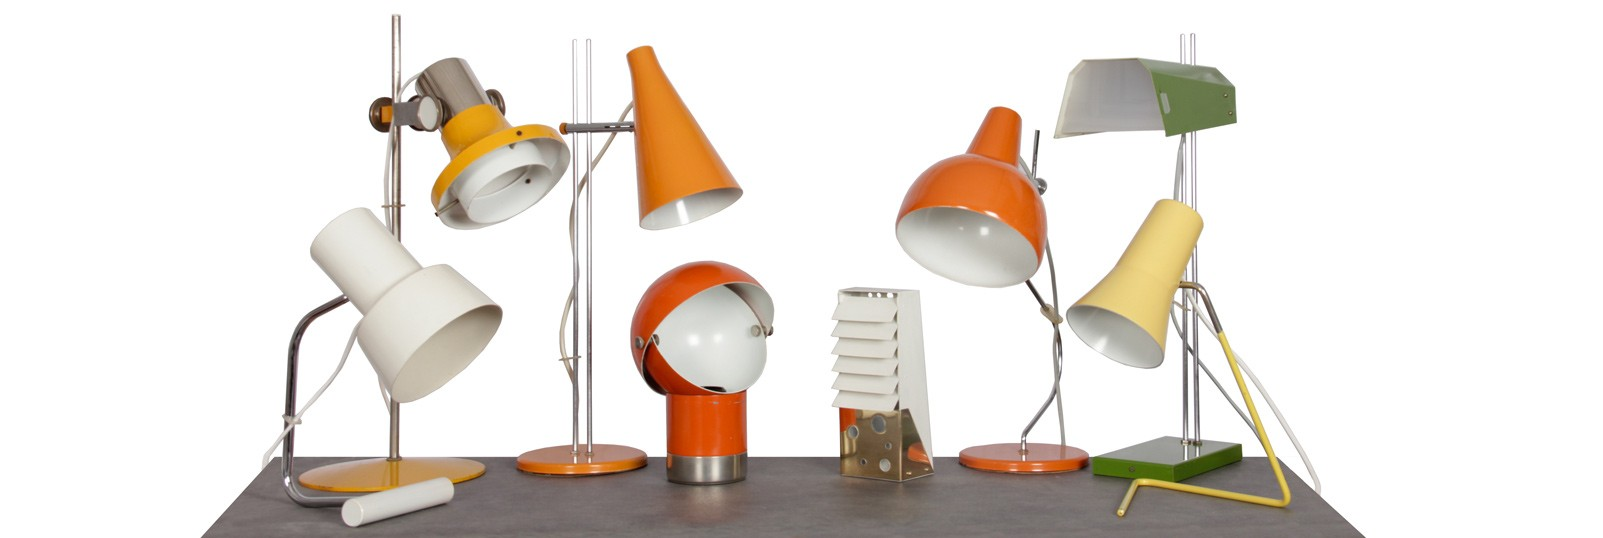 Lamps from Eastern Europe